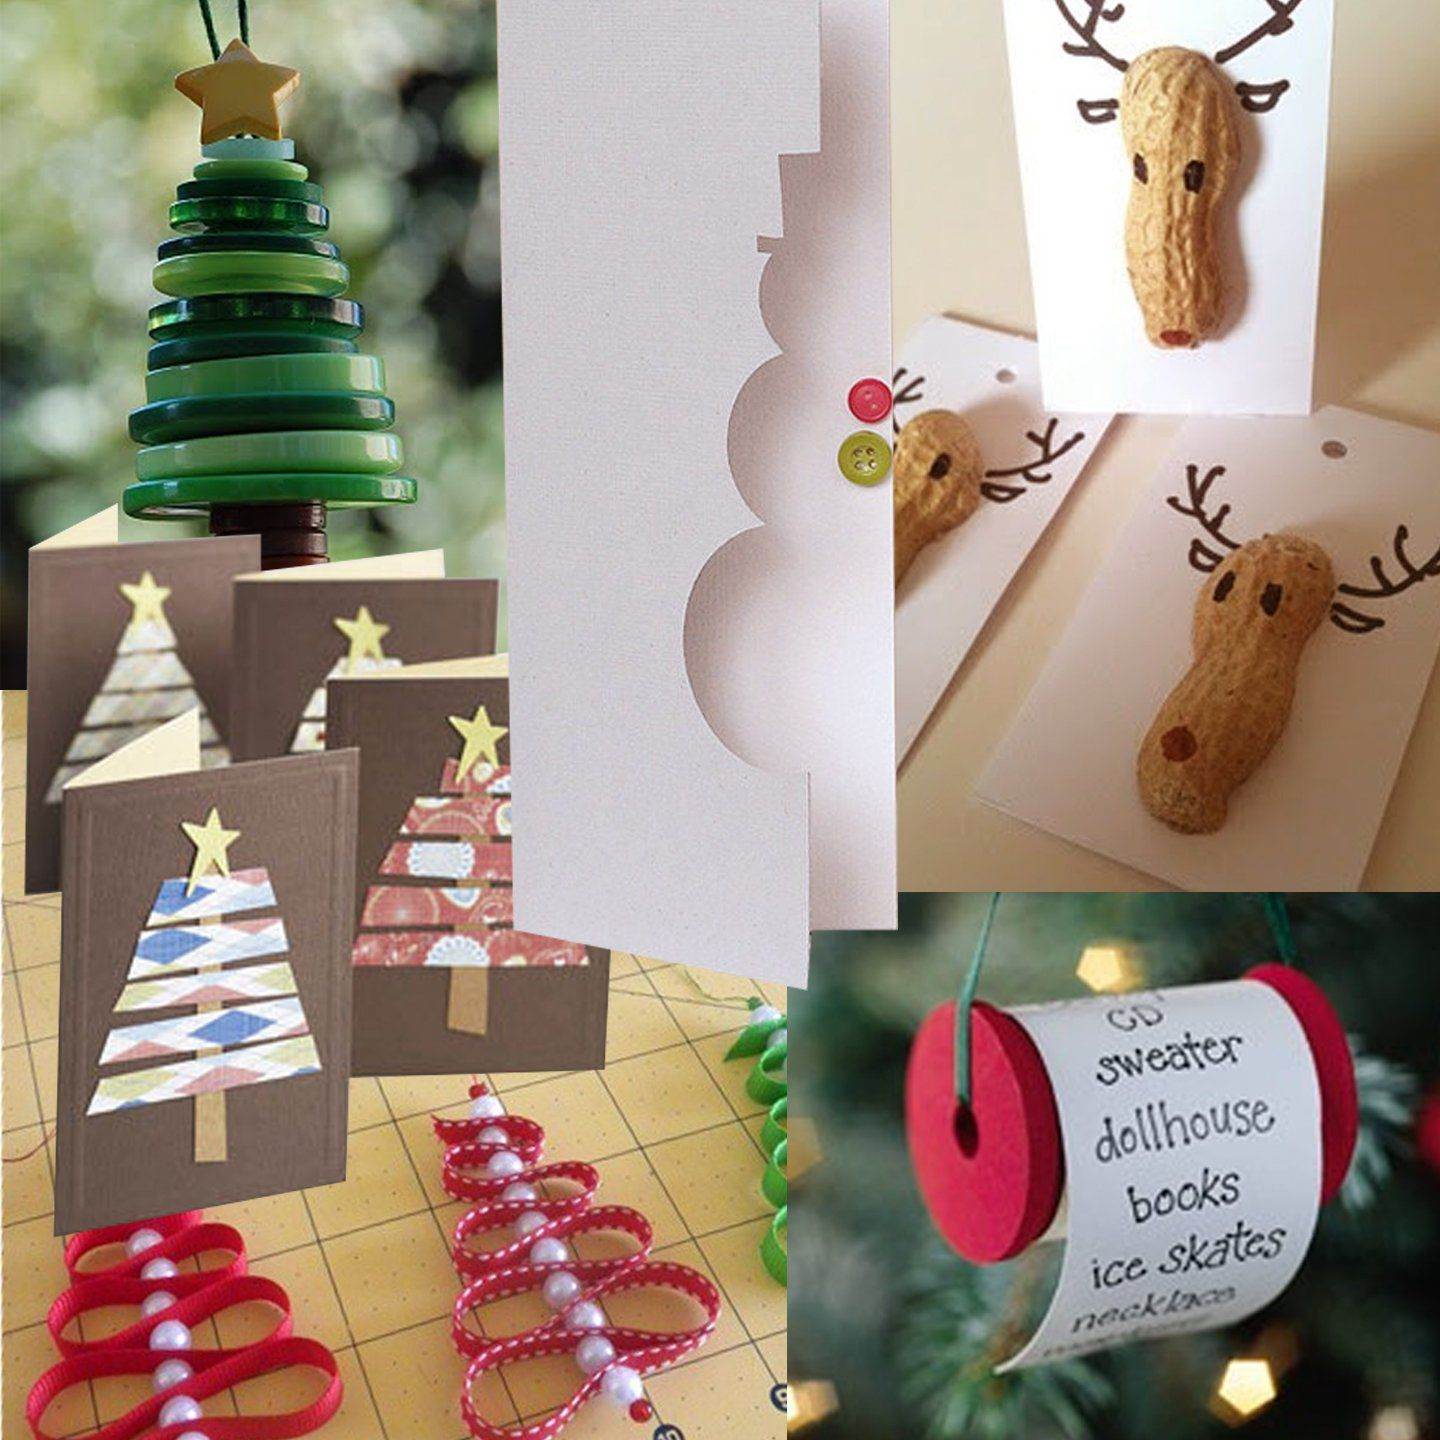 Christmas room ideas diy decorations xmas decorations for Christmas decorations easy to make at home